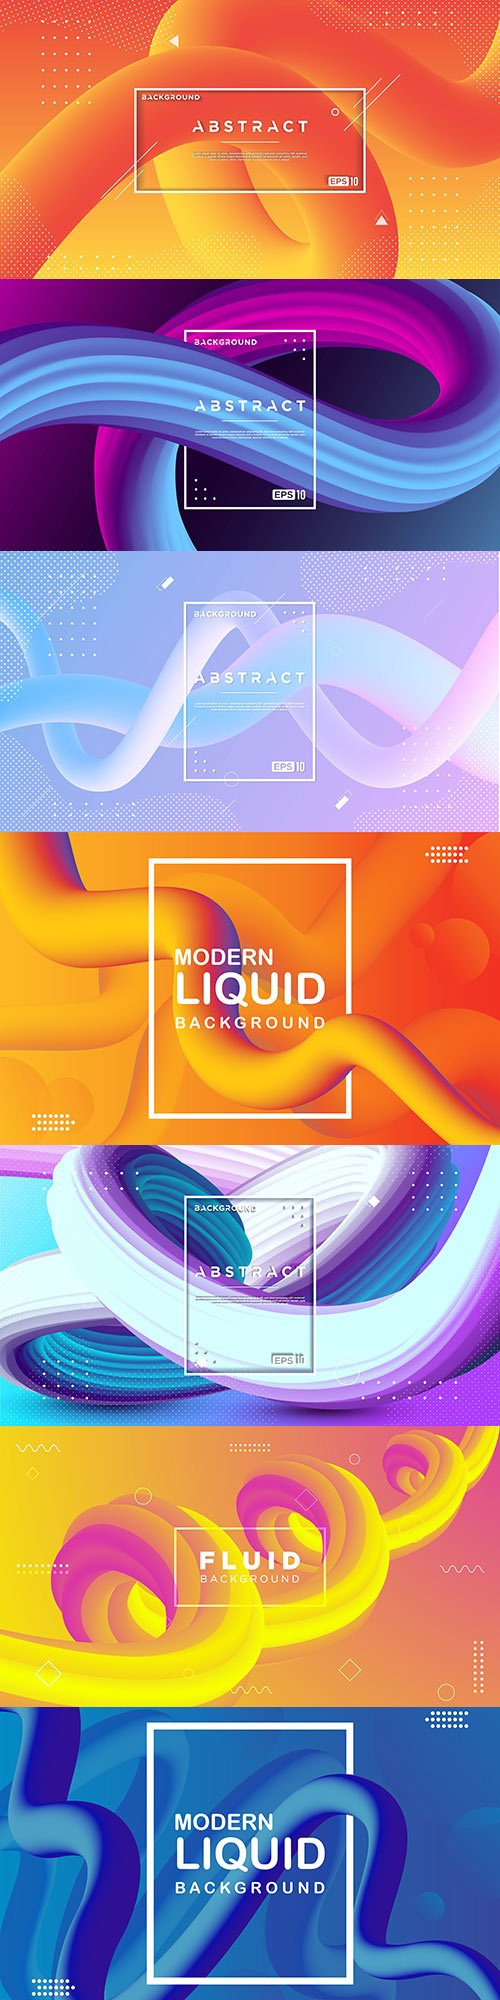 Color abstract background fluid wave 3d design